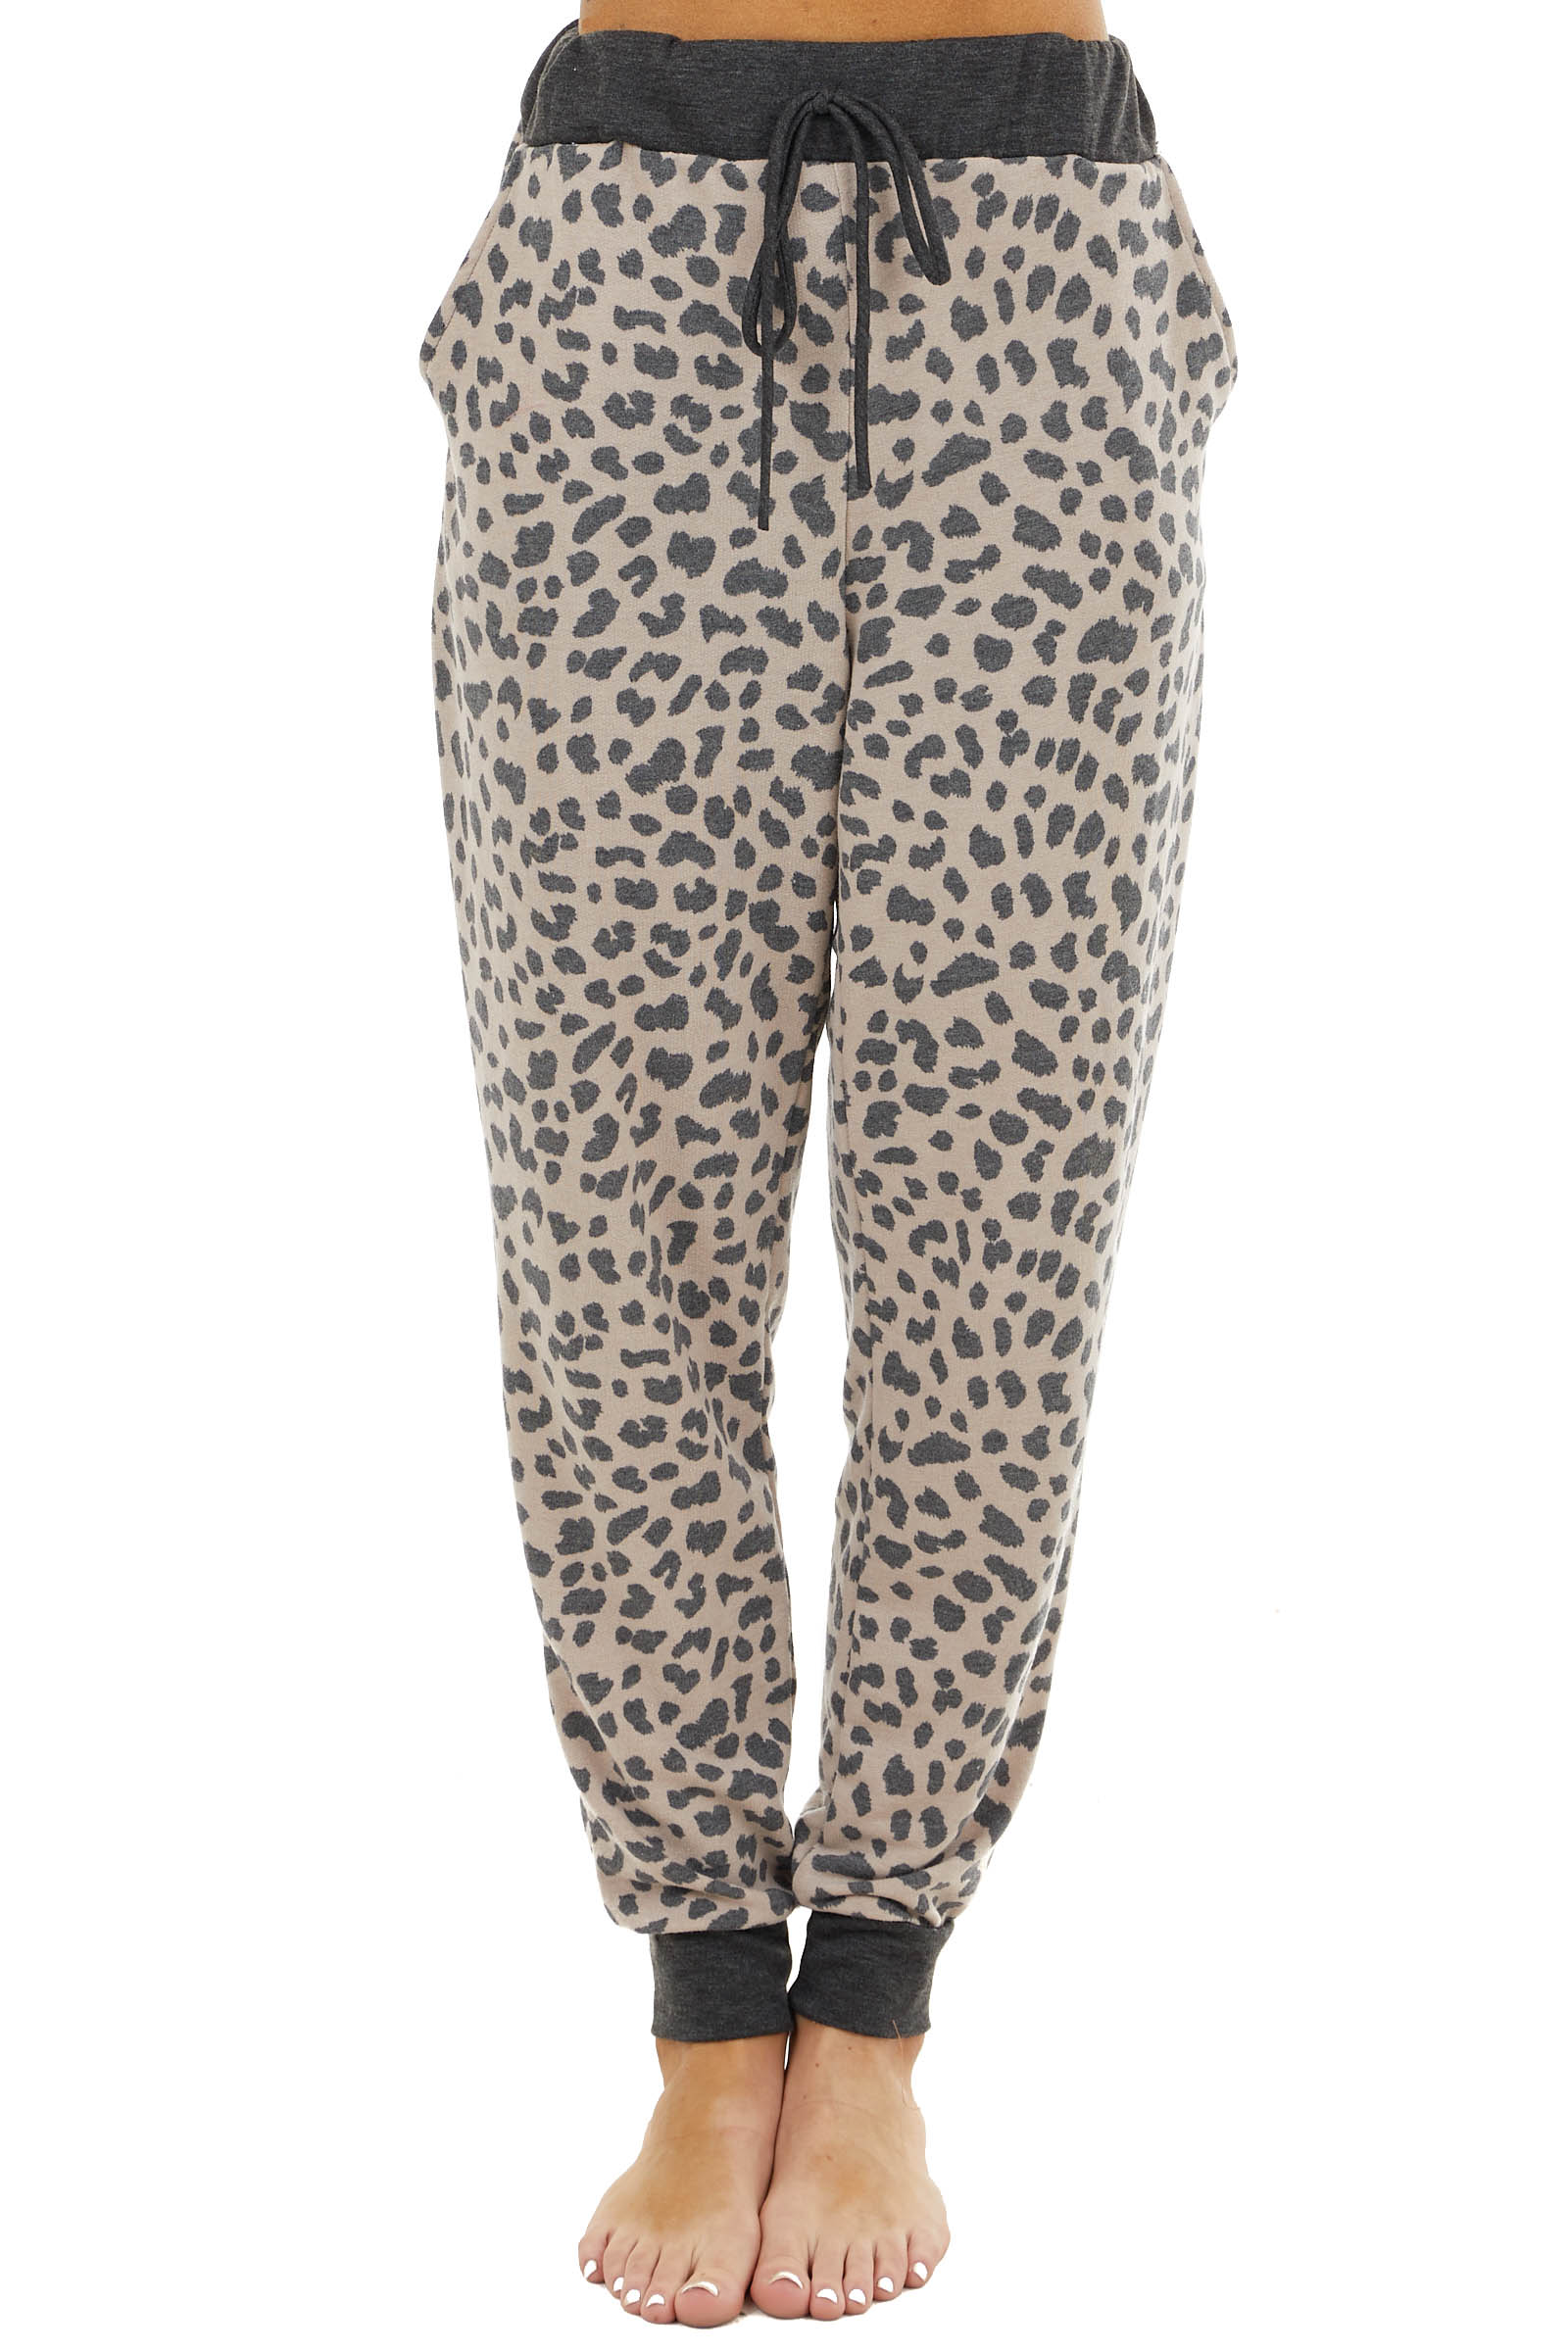 Latte and Charcoal Leopard Print Joggers with Side Pockets